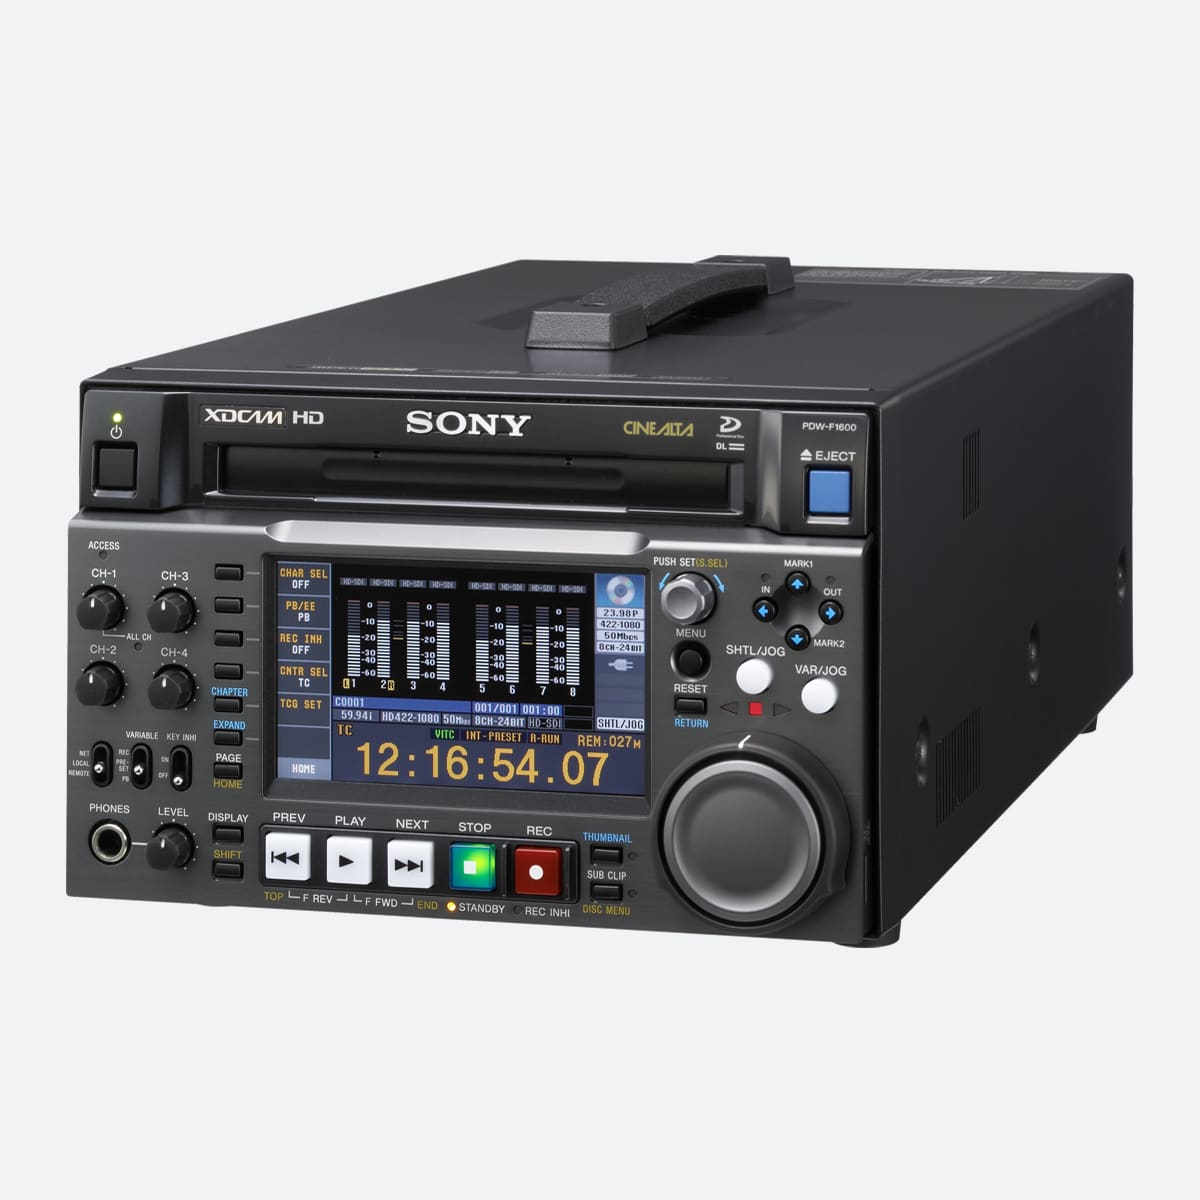 Sony PDW-F1600 XDCAM HD422 Professional Disc Recorder